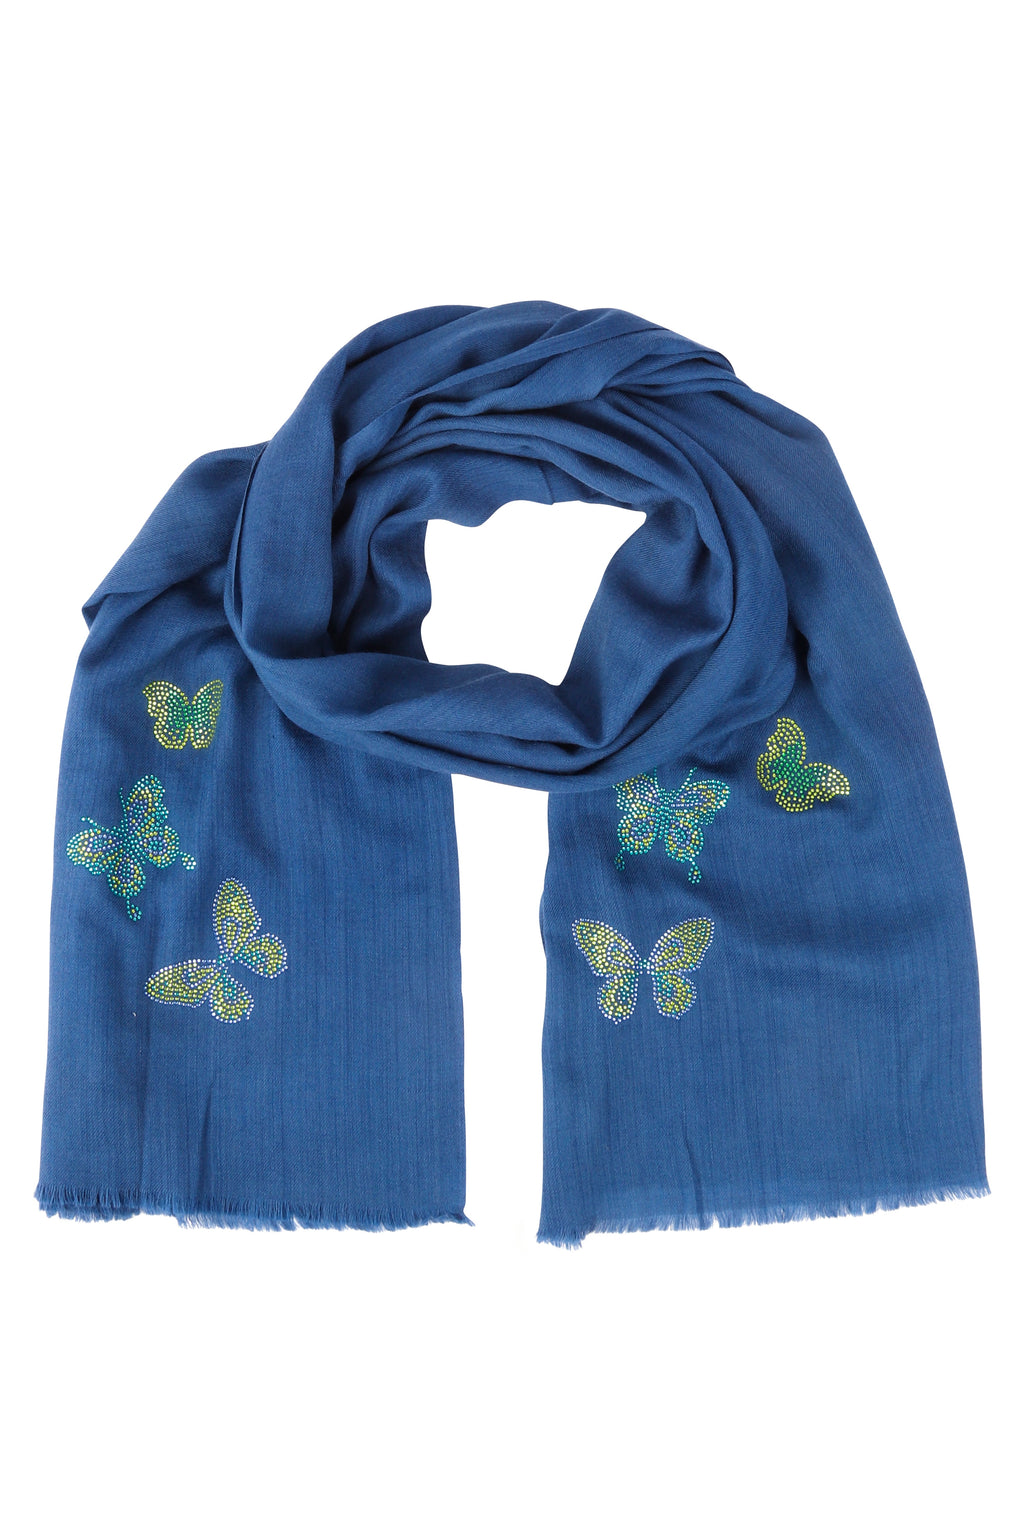 Cashmere Pashmina BUTTERFLY (mid blue)